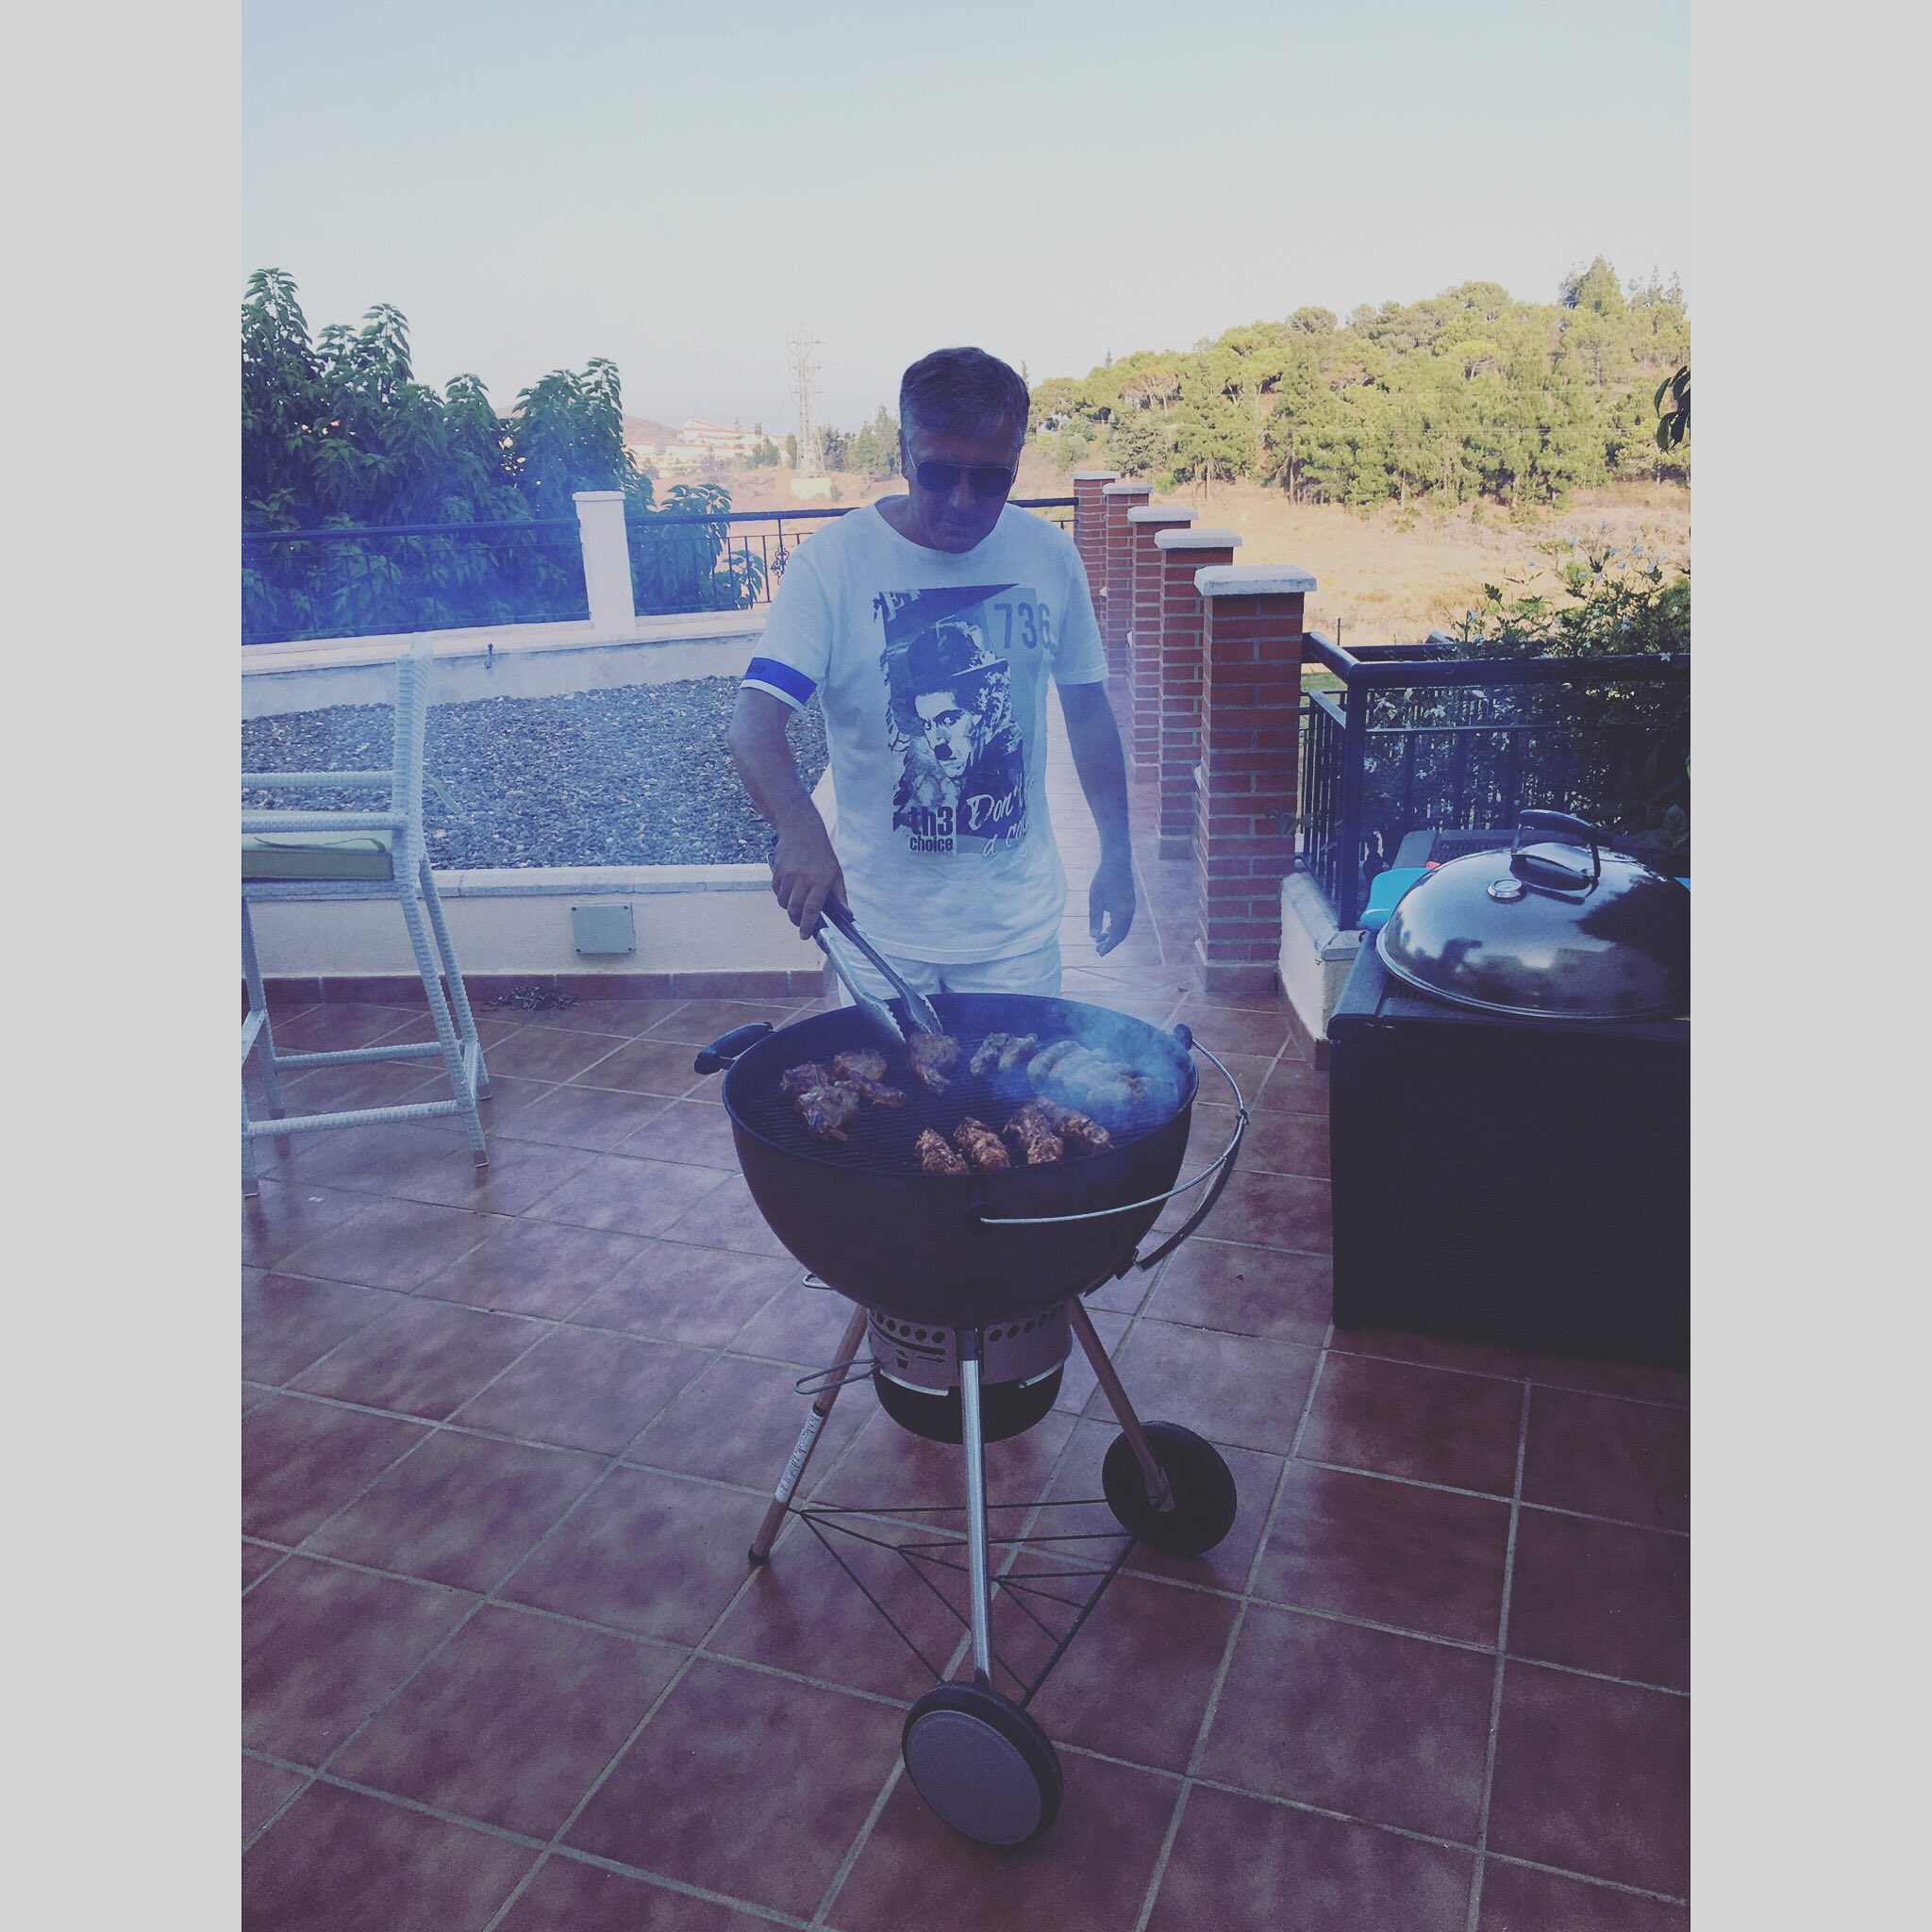 Sometimes you have to let them have it there way!😂 #FatherInLaw  #BBQ @ElliottW_PIM pim #PlayaInMarbella @ITVBe 9pm https://t.co/Ji5LxQz3Ih